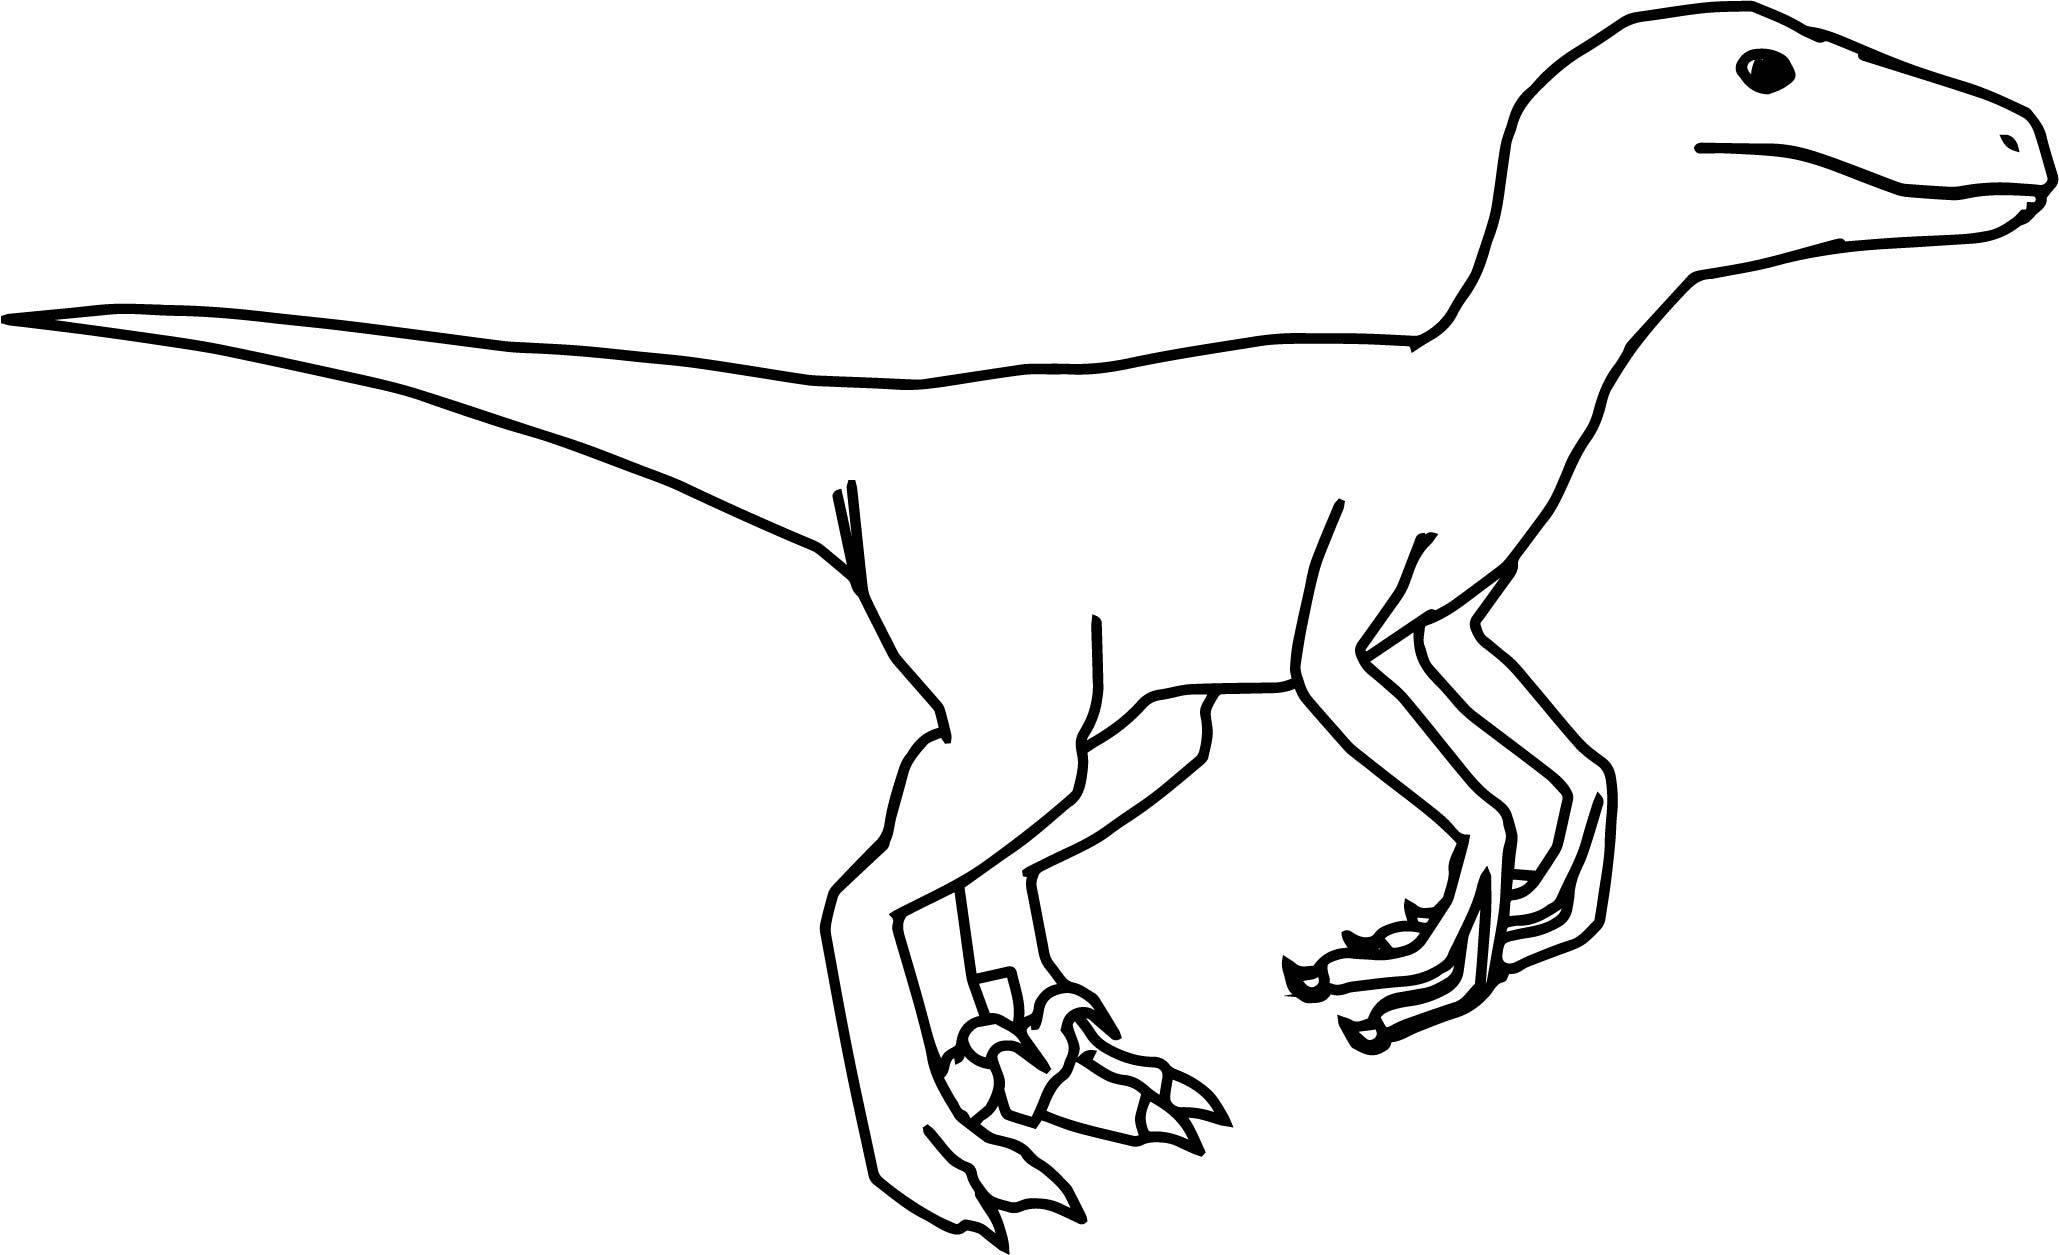 Awesome Raptor Coloring Page Coloring Pages Life Size Barbie Life Size Cutouts